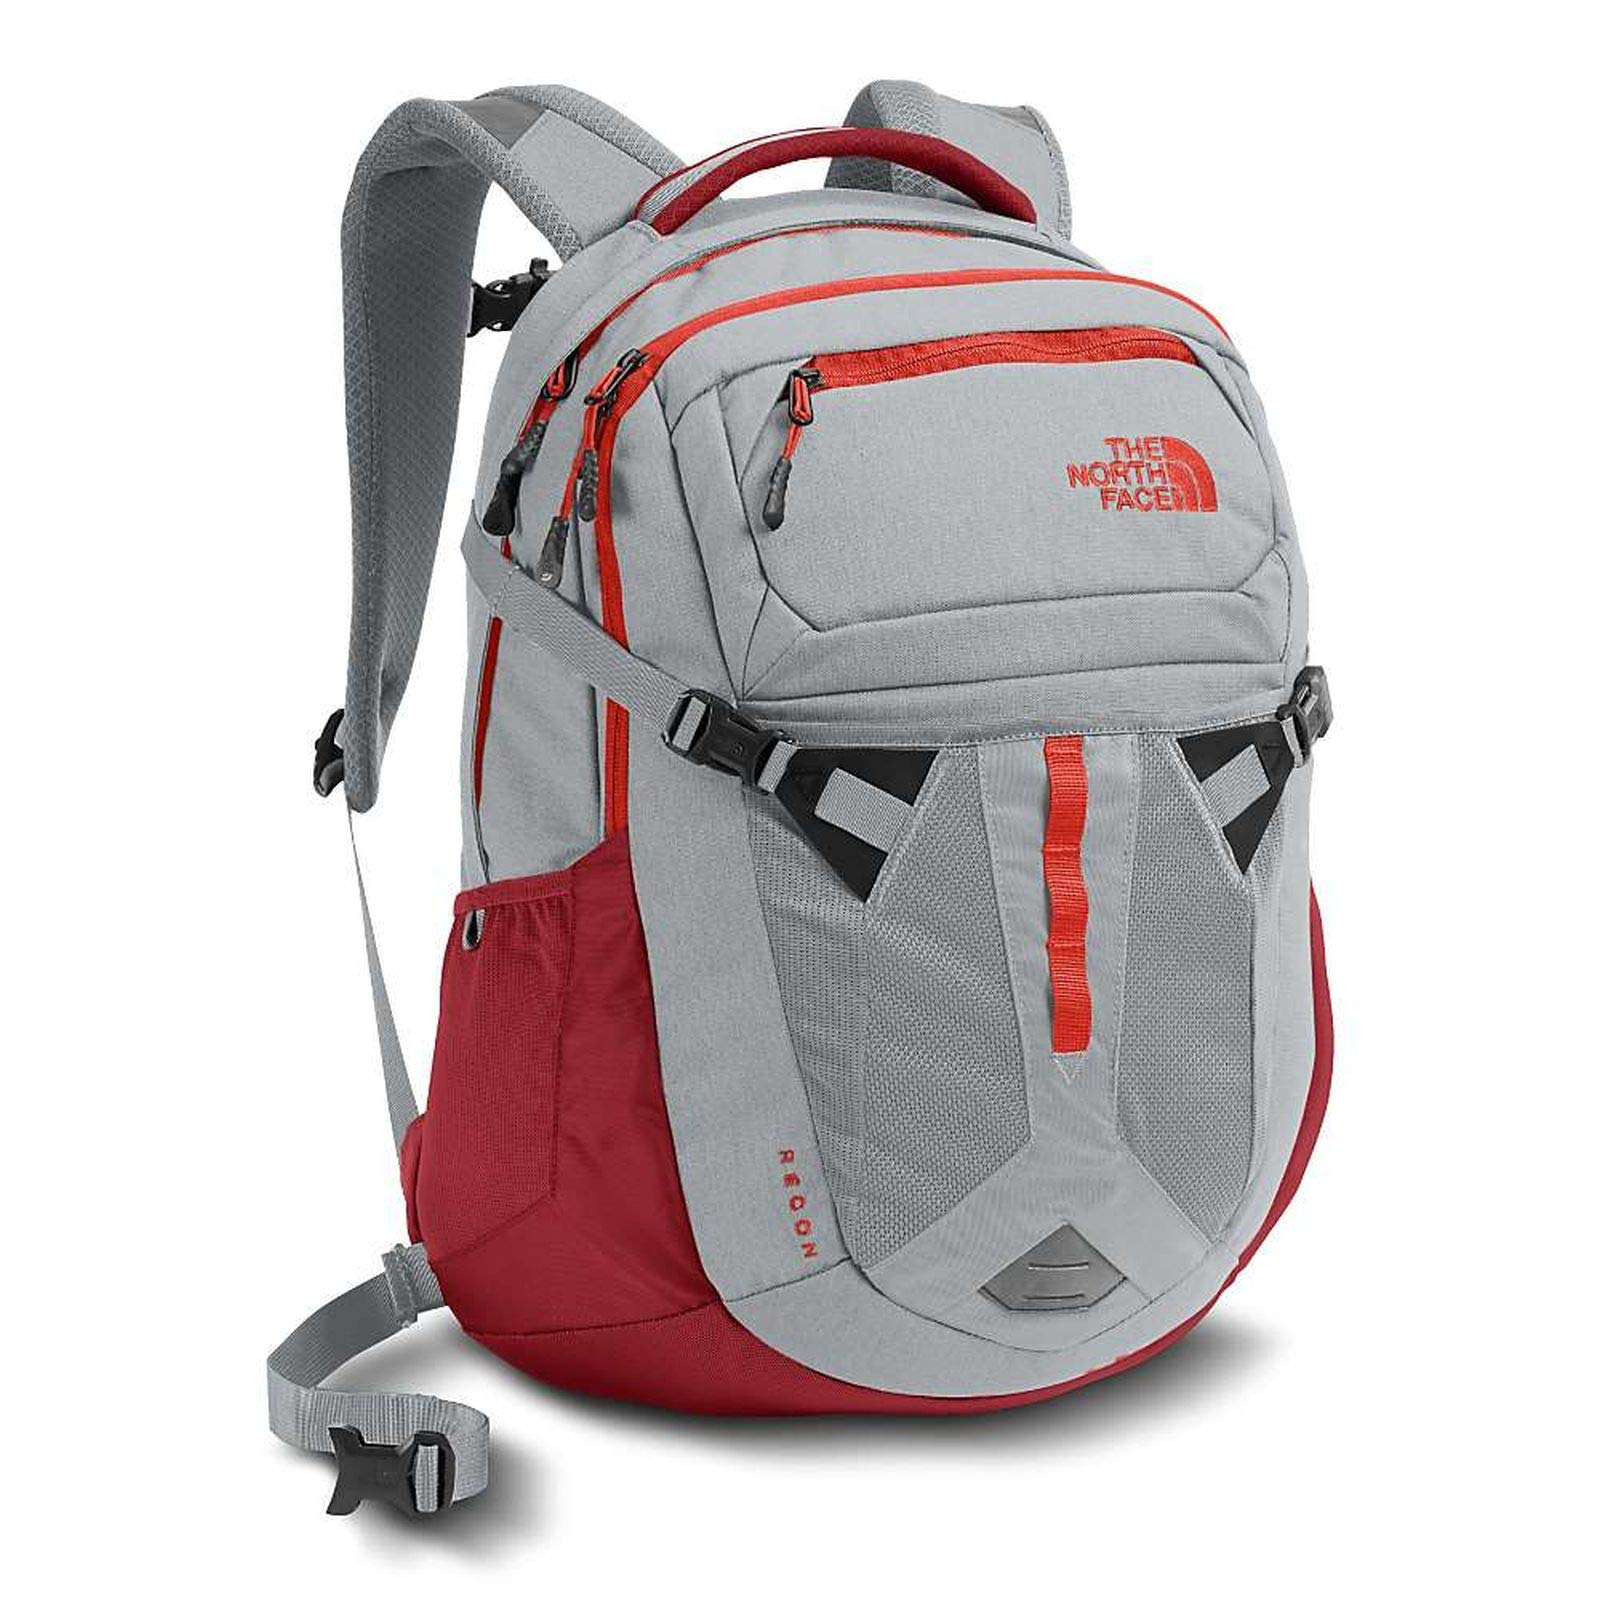 The North Face mens RECON Backpack CLG41SX - HIGH RISE GREY/FIRE BRICK RED